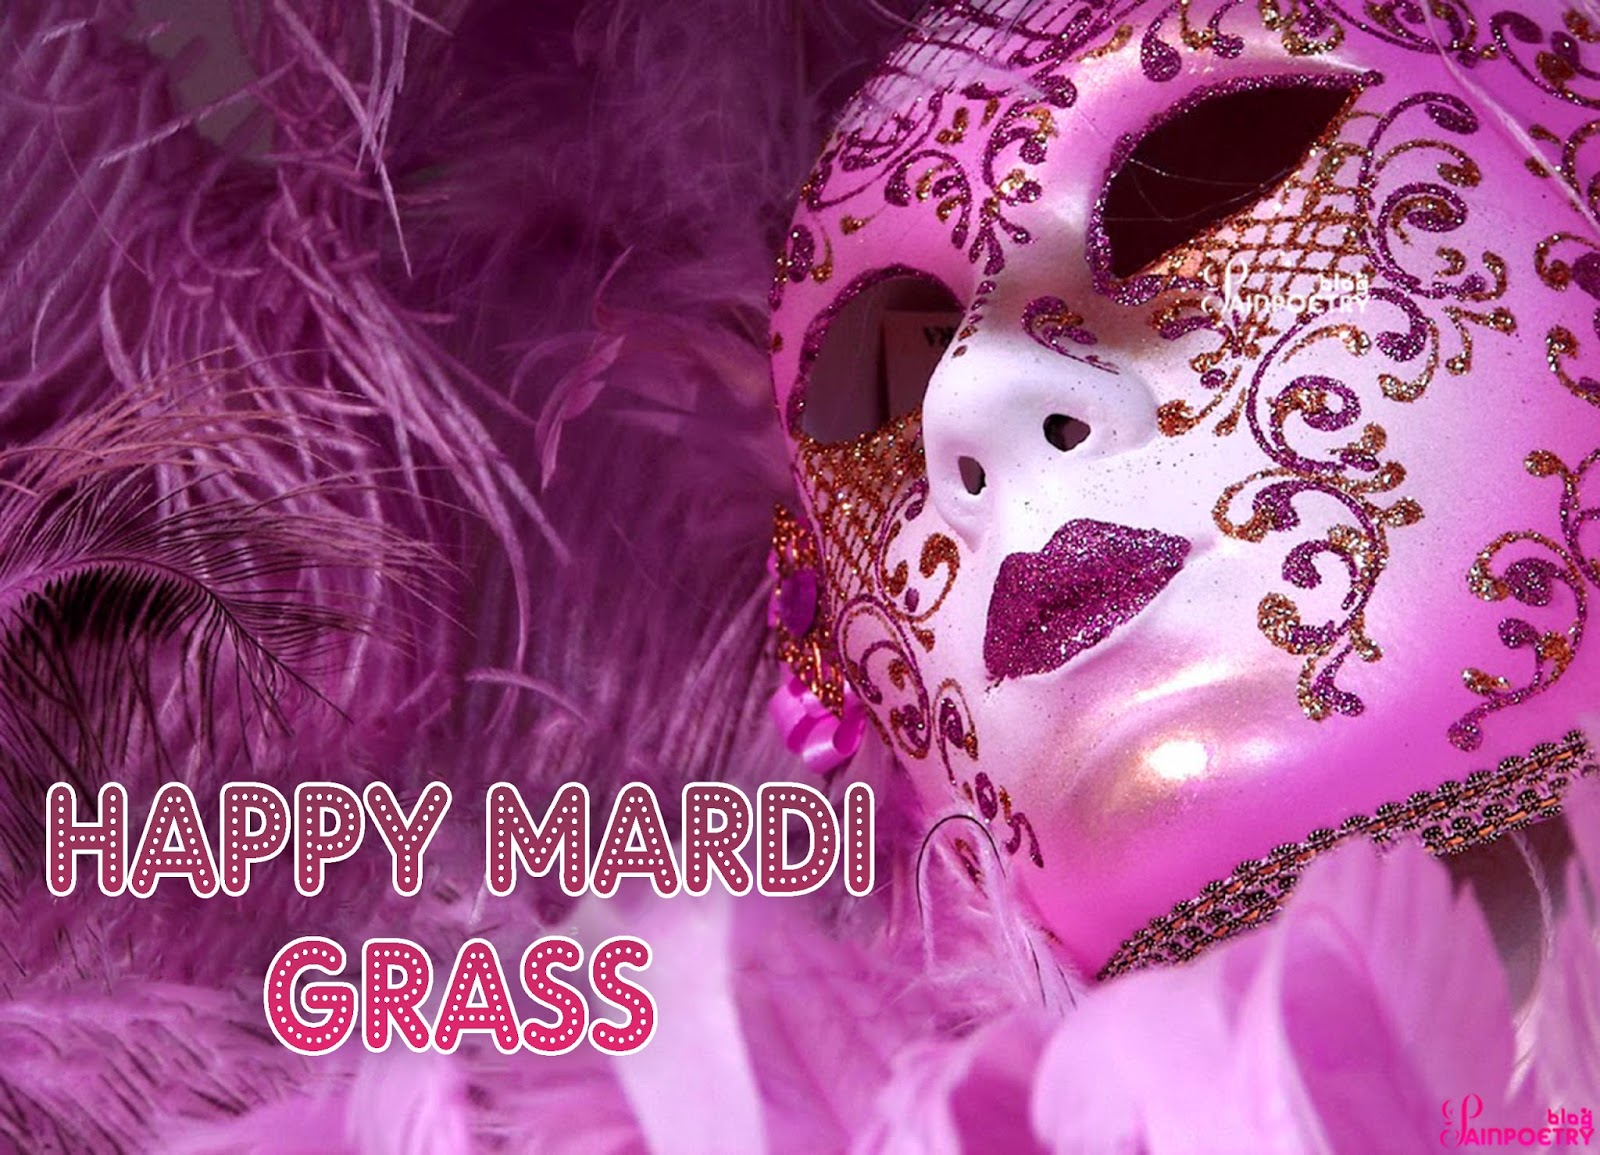 Happy-Mardi-Gras-Wishes-eCard-Image-Photo-Wallpaper-Venetian-Carnival-Mask-Wide